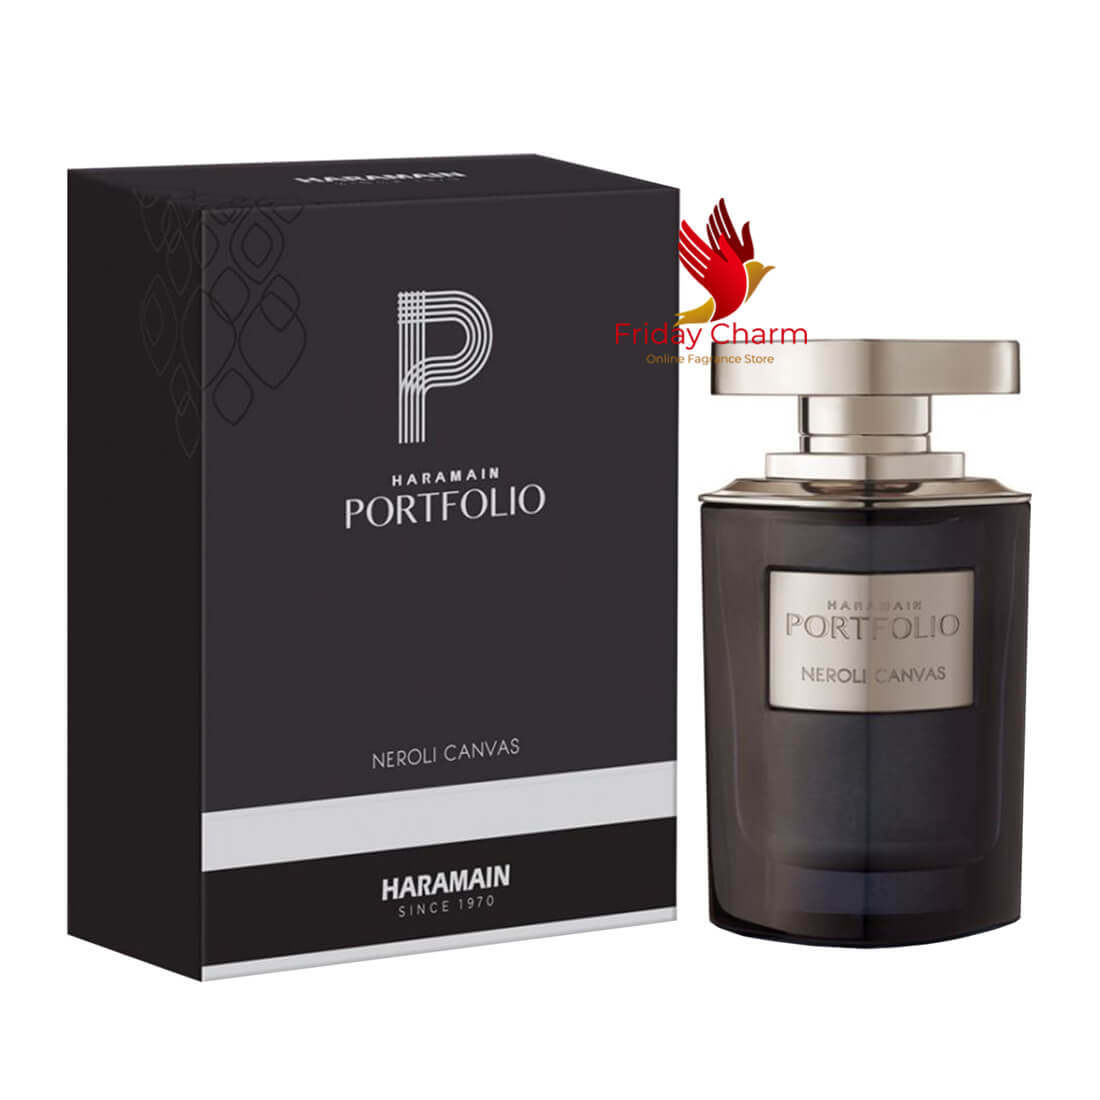 Al Haramain Portfolio Neroli Canvas Perfume Spray - 75ml